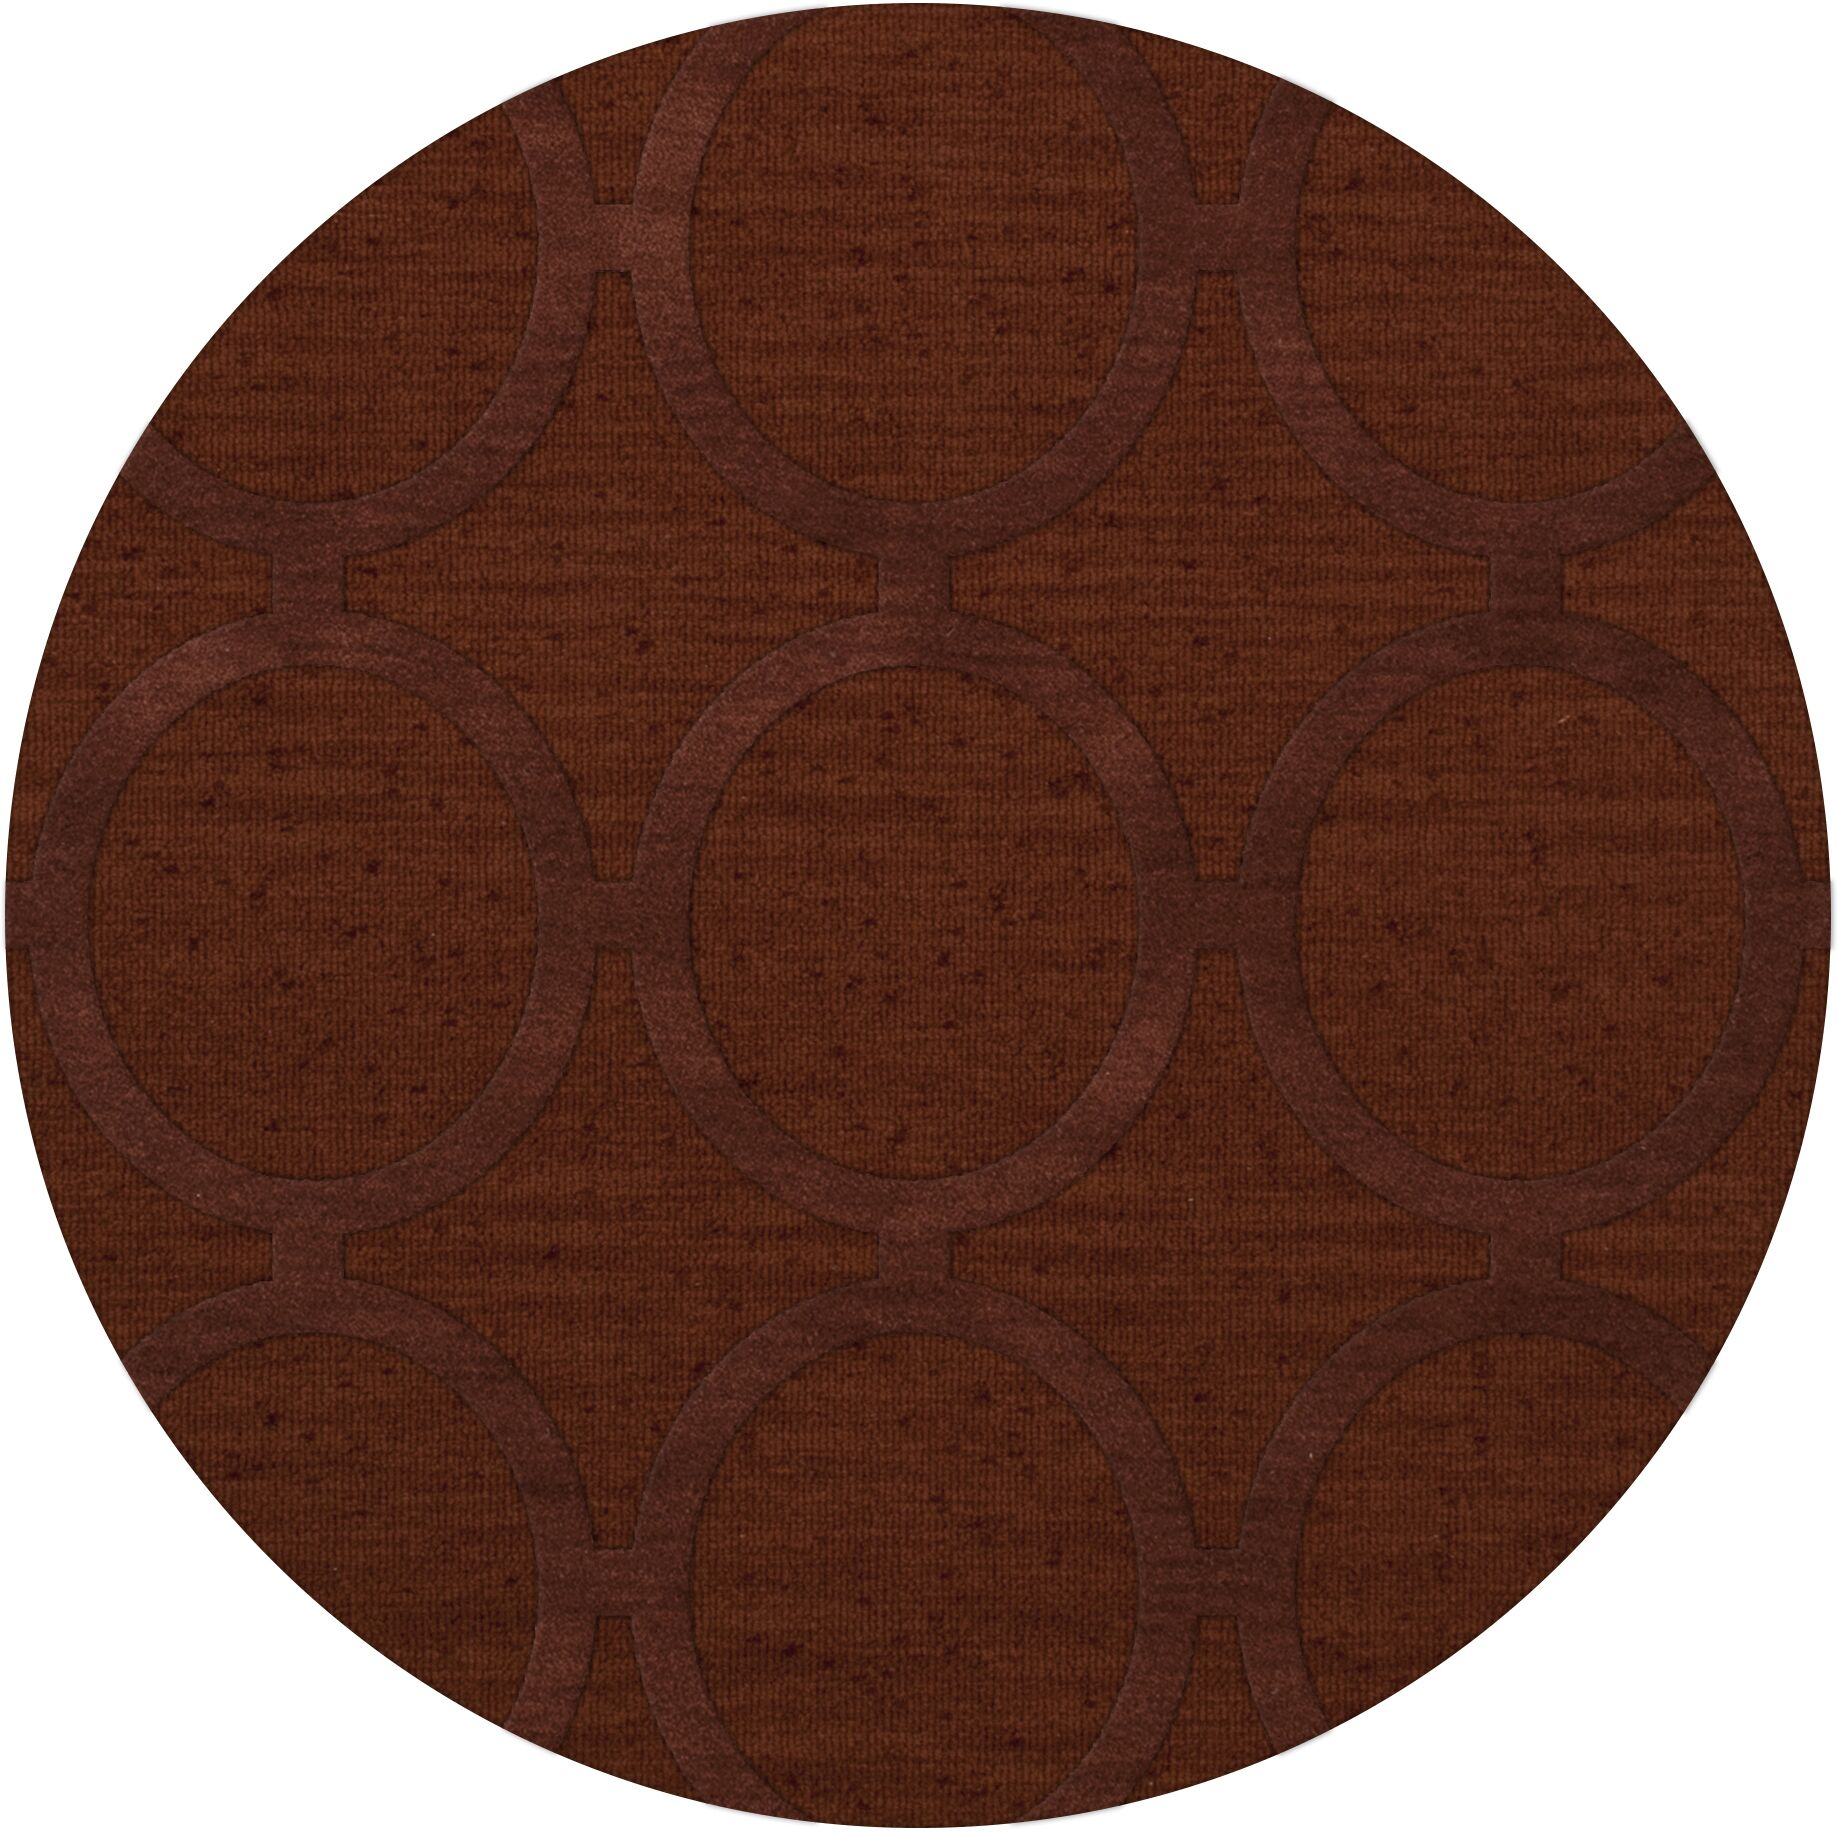 Dover Tufted Wool Paprika Area Rug Rug Size: Round 8'